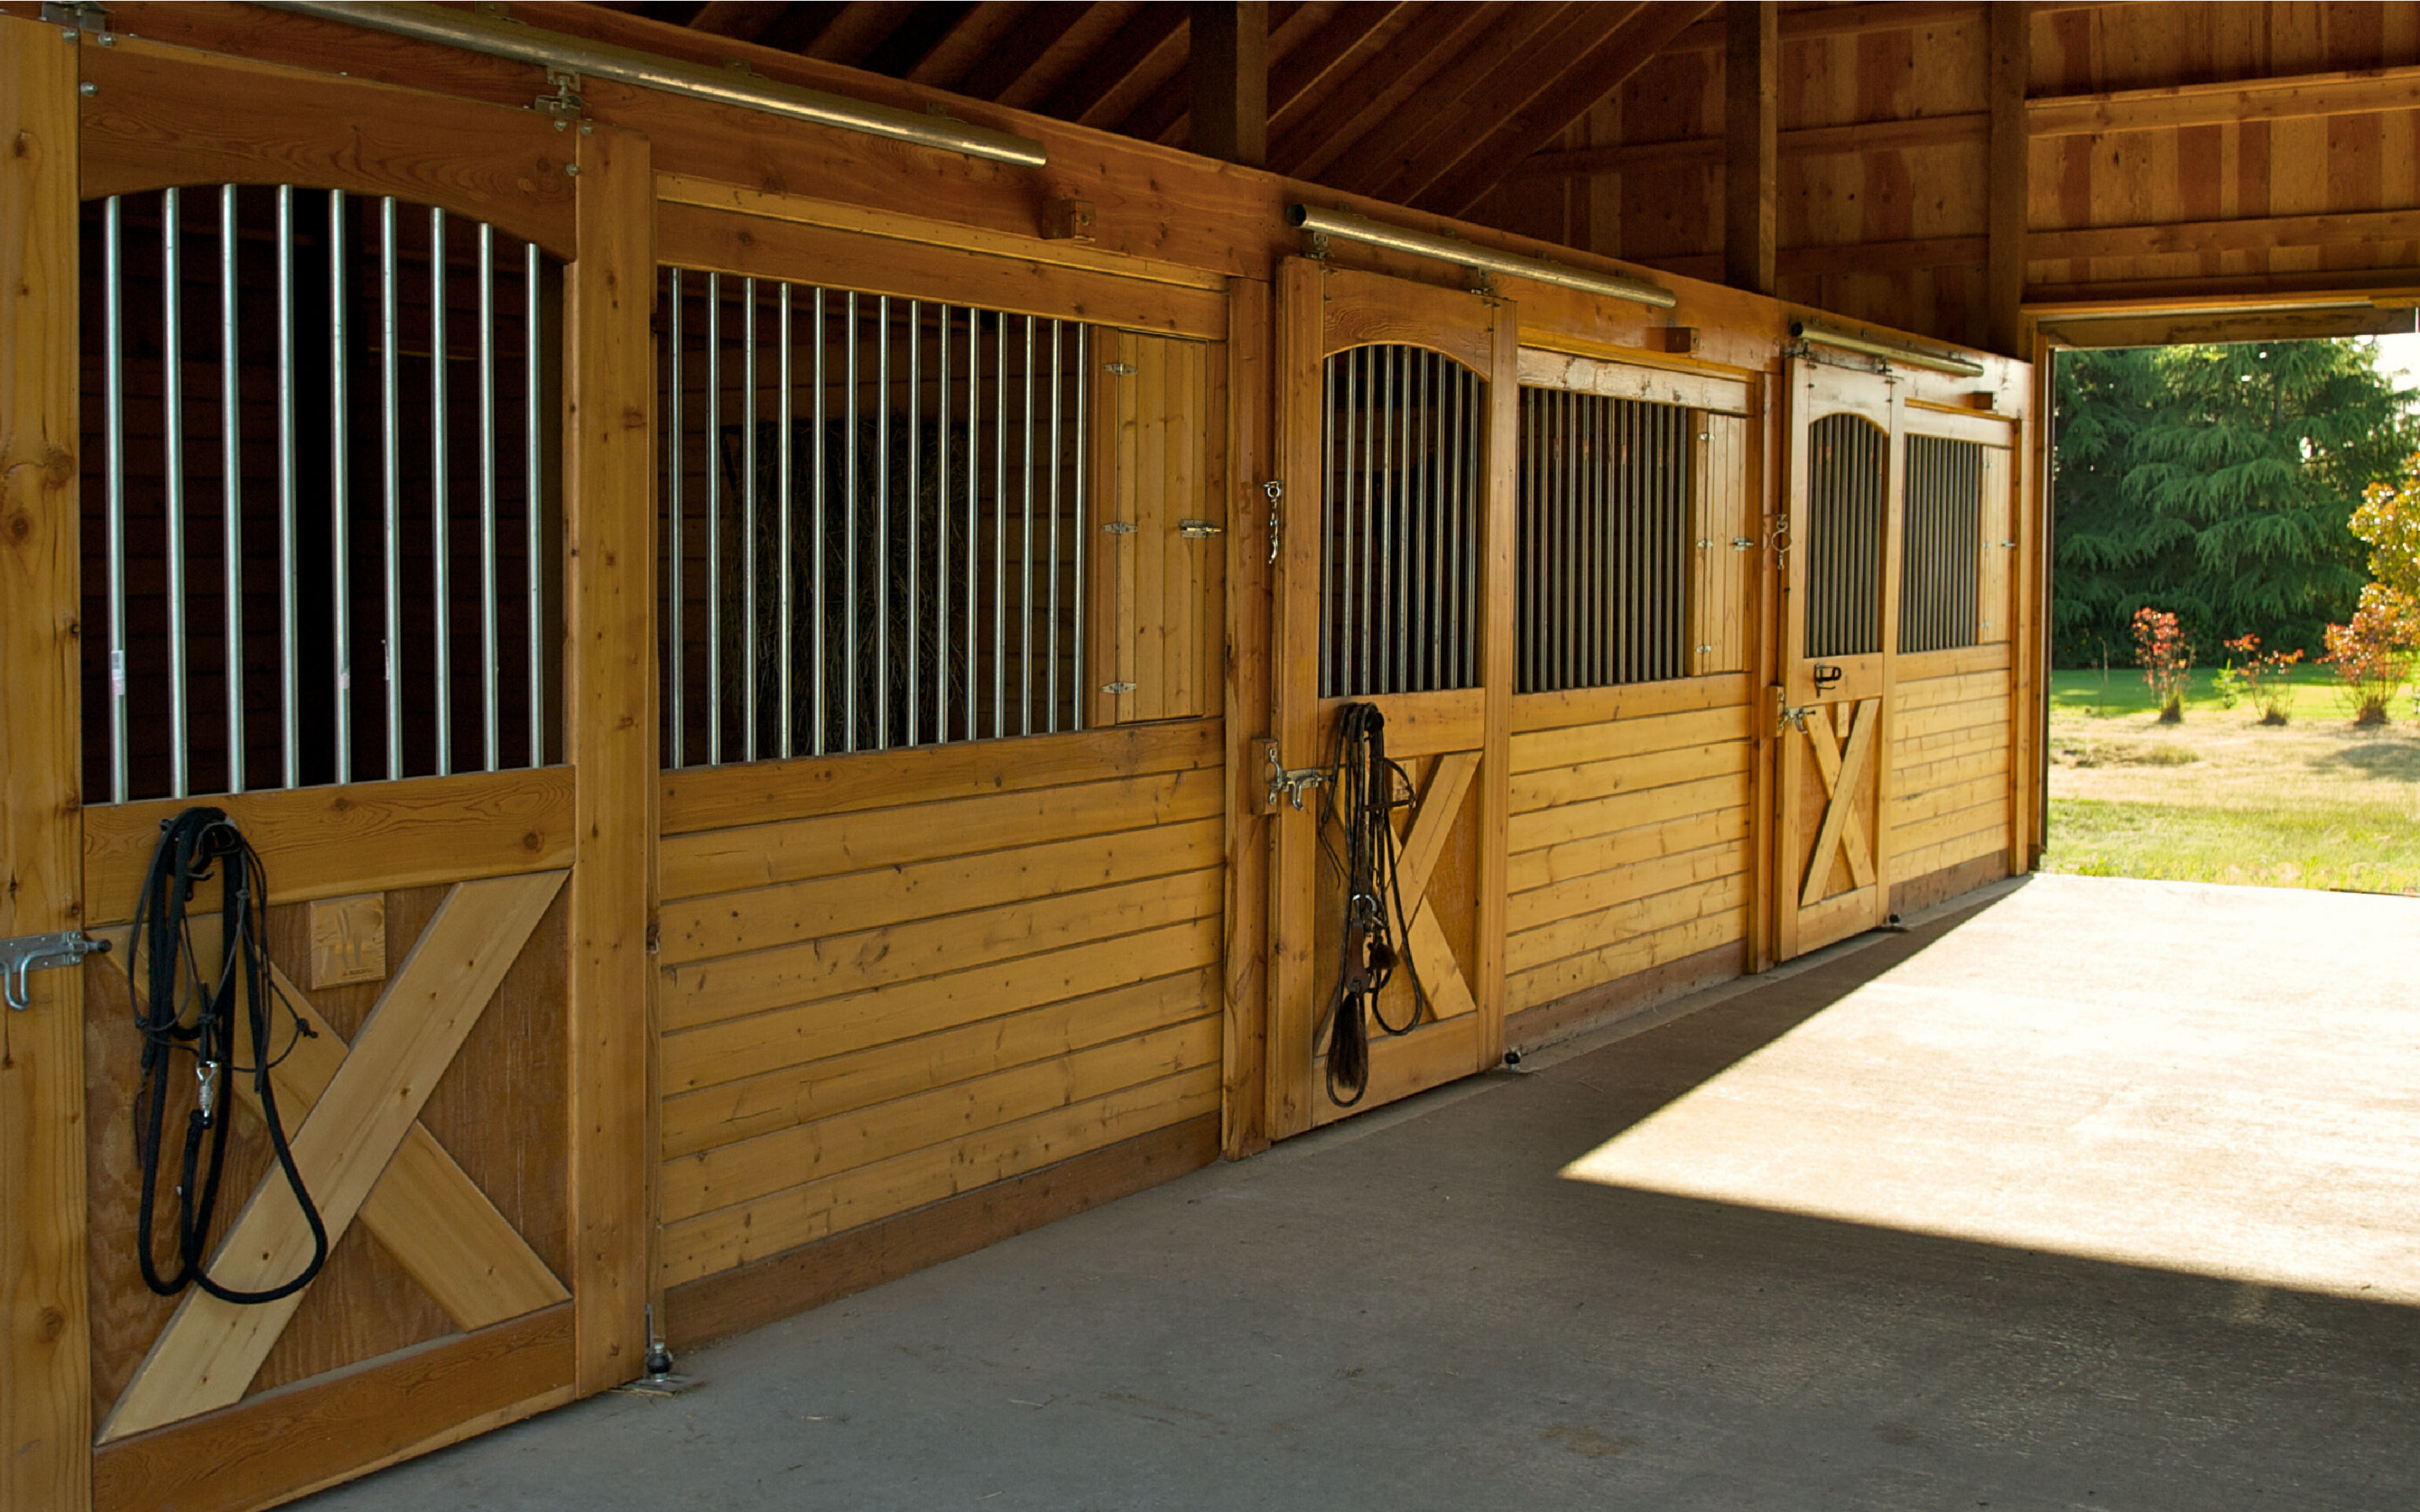 The Costs of Building an Equestrian Facility